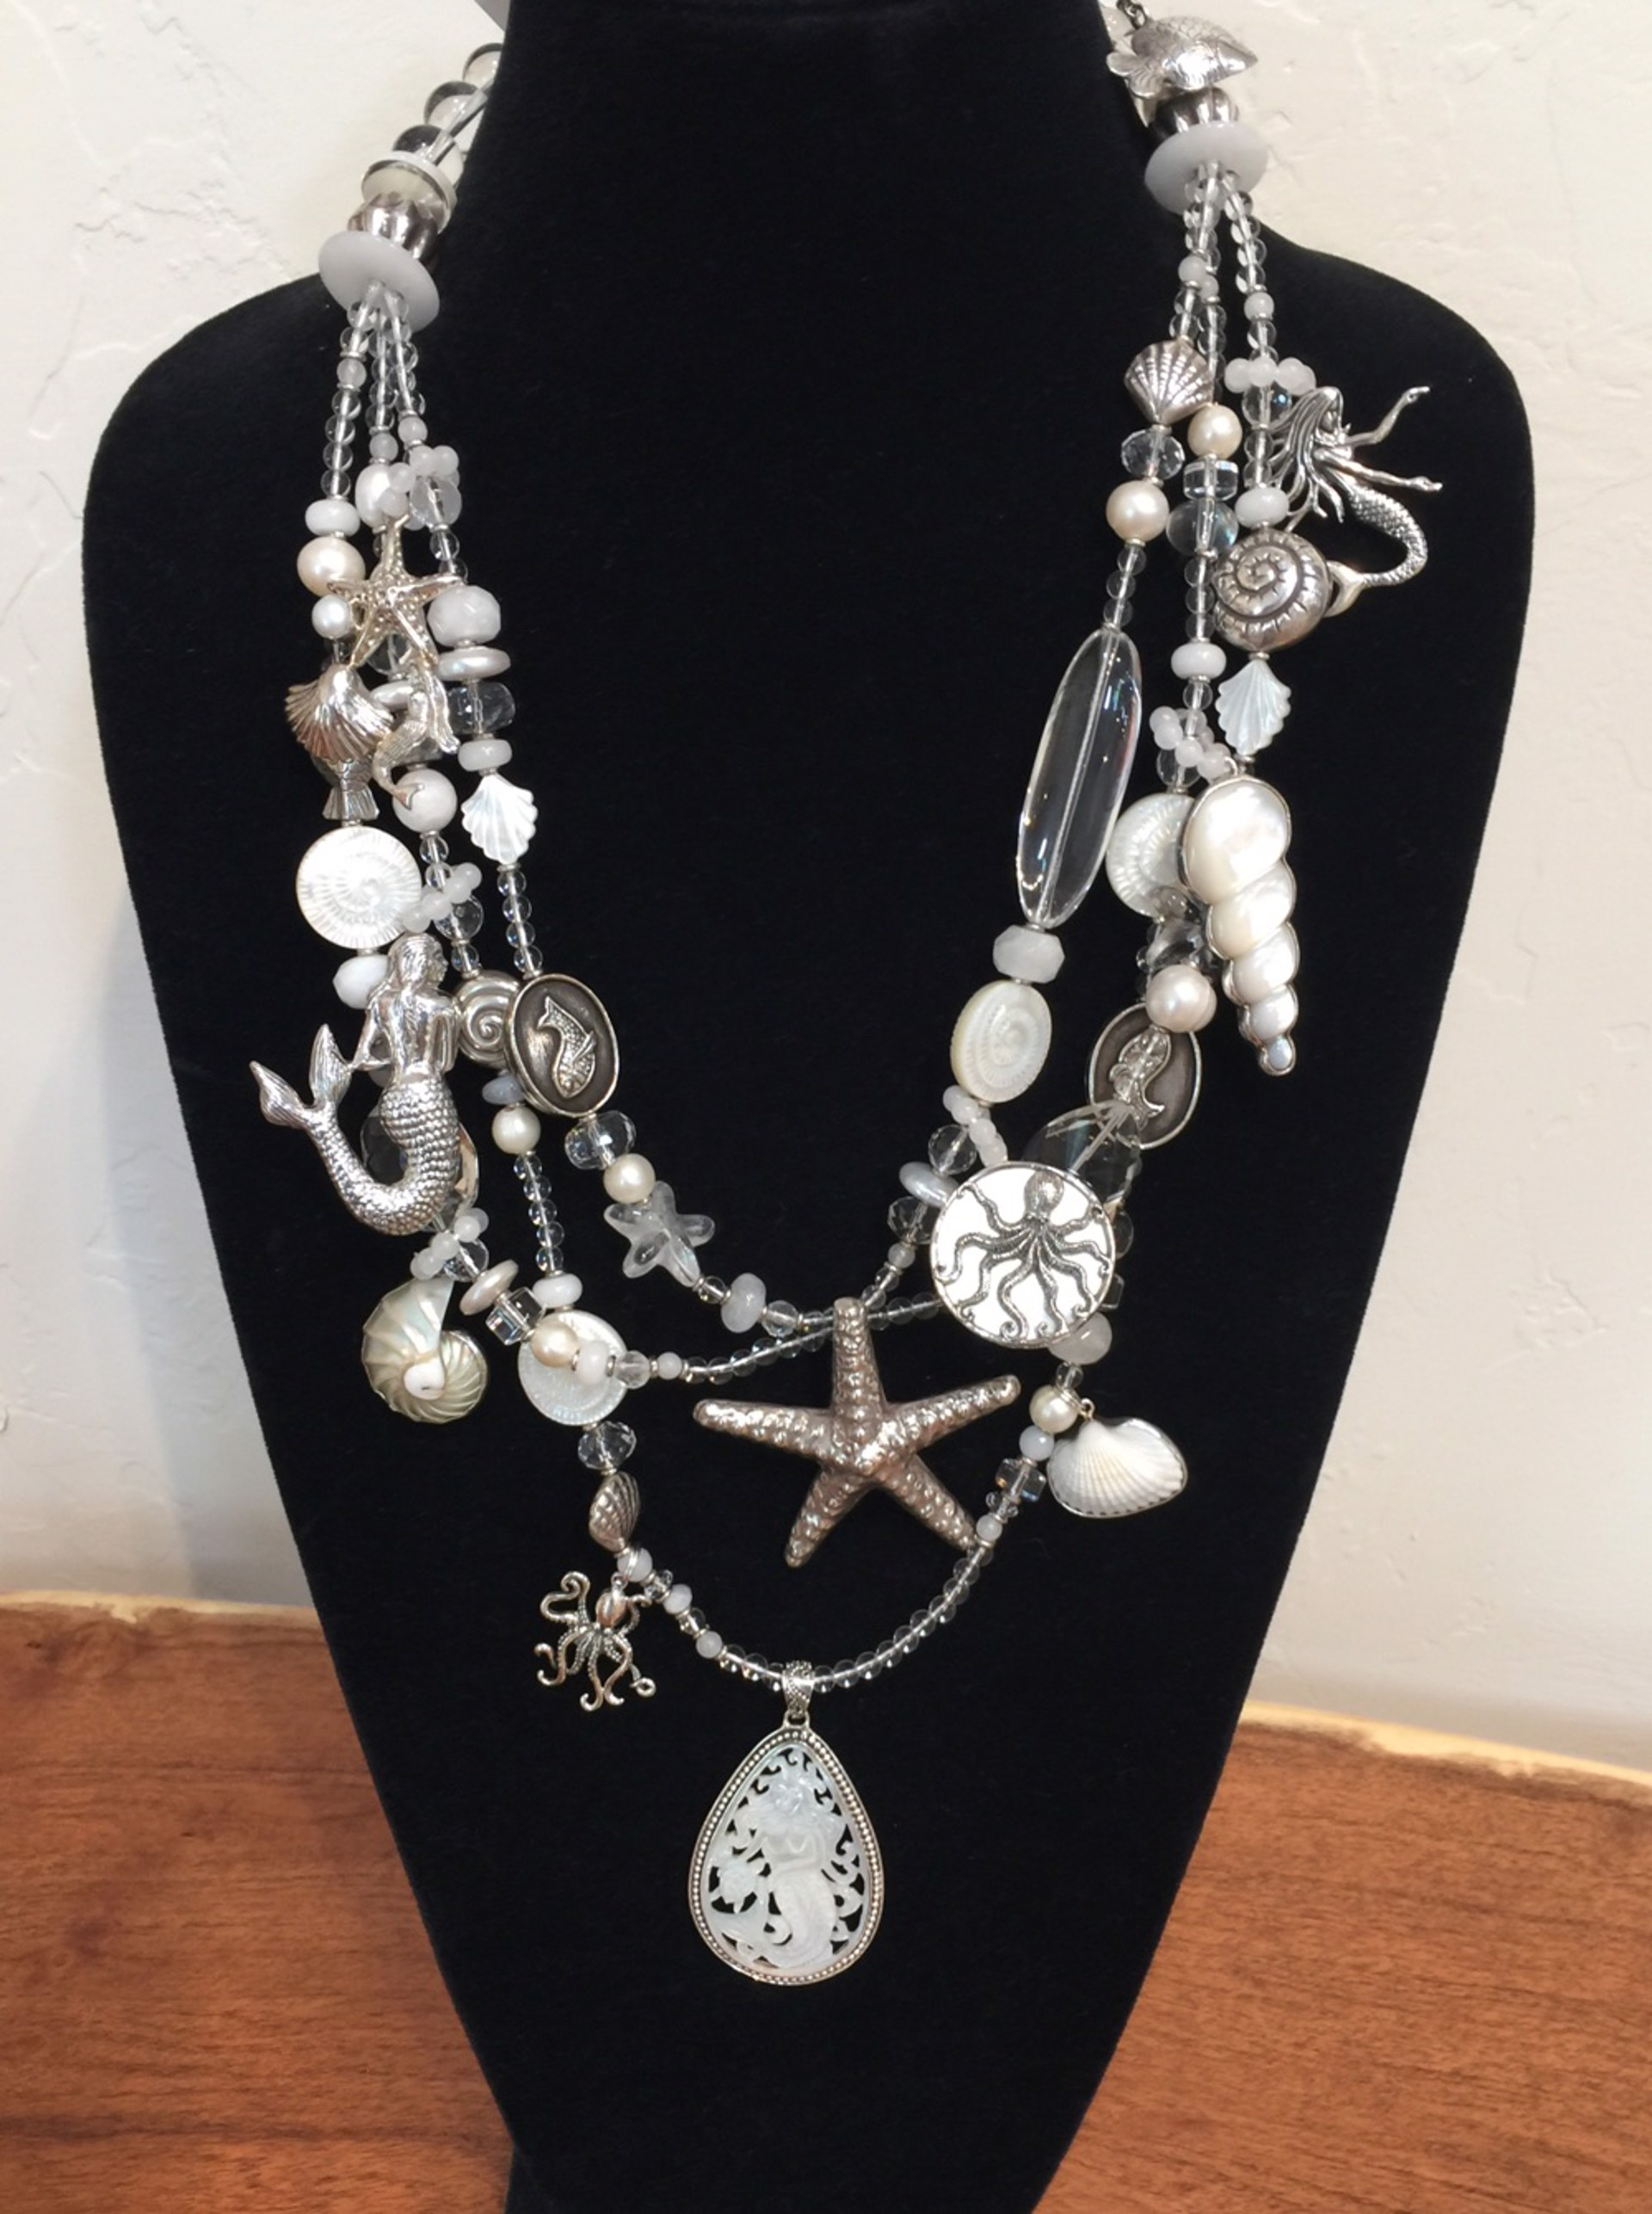 KY 1352C - 3 Strand Sea Creature Necklace, Rock Crystal, Pearls, Moonstone & Sterling Silver by Kim Yubeta